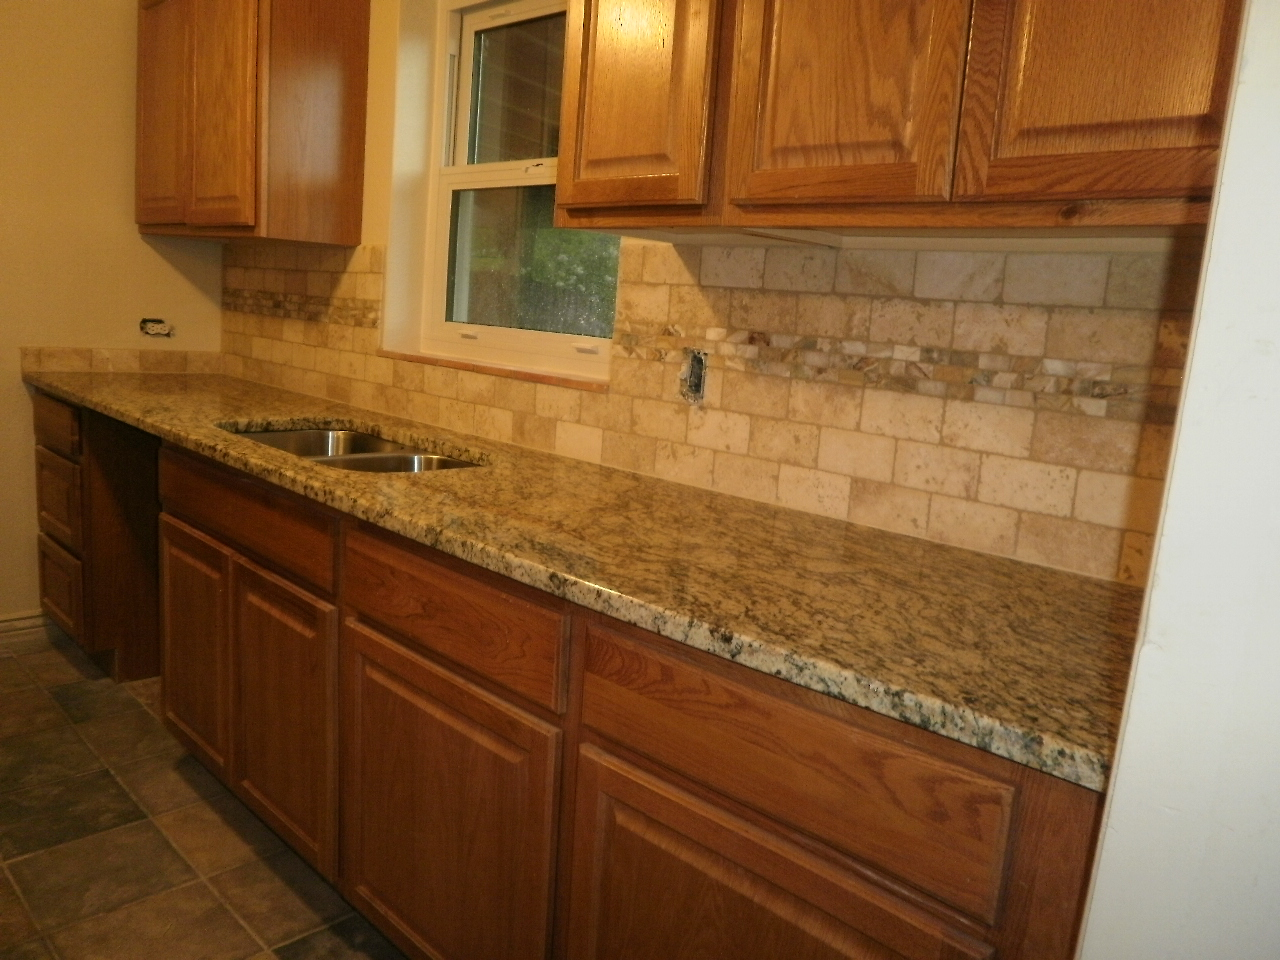 Integrity installations a division of front Kitchen countertop ideas